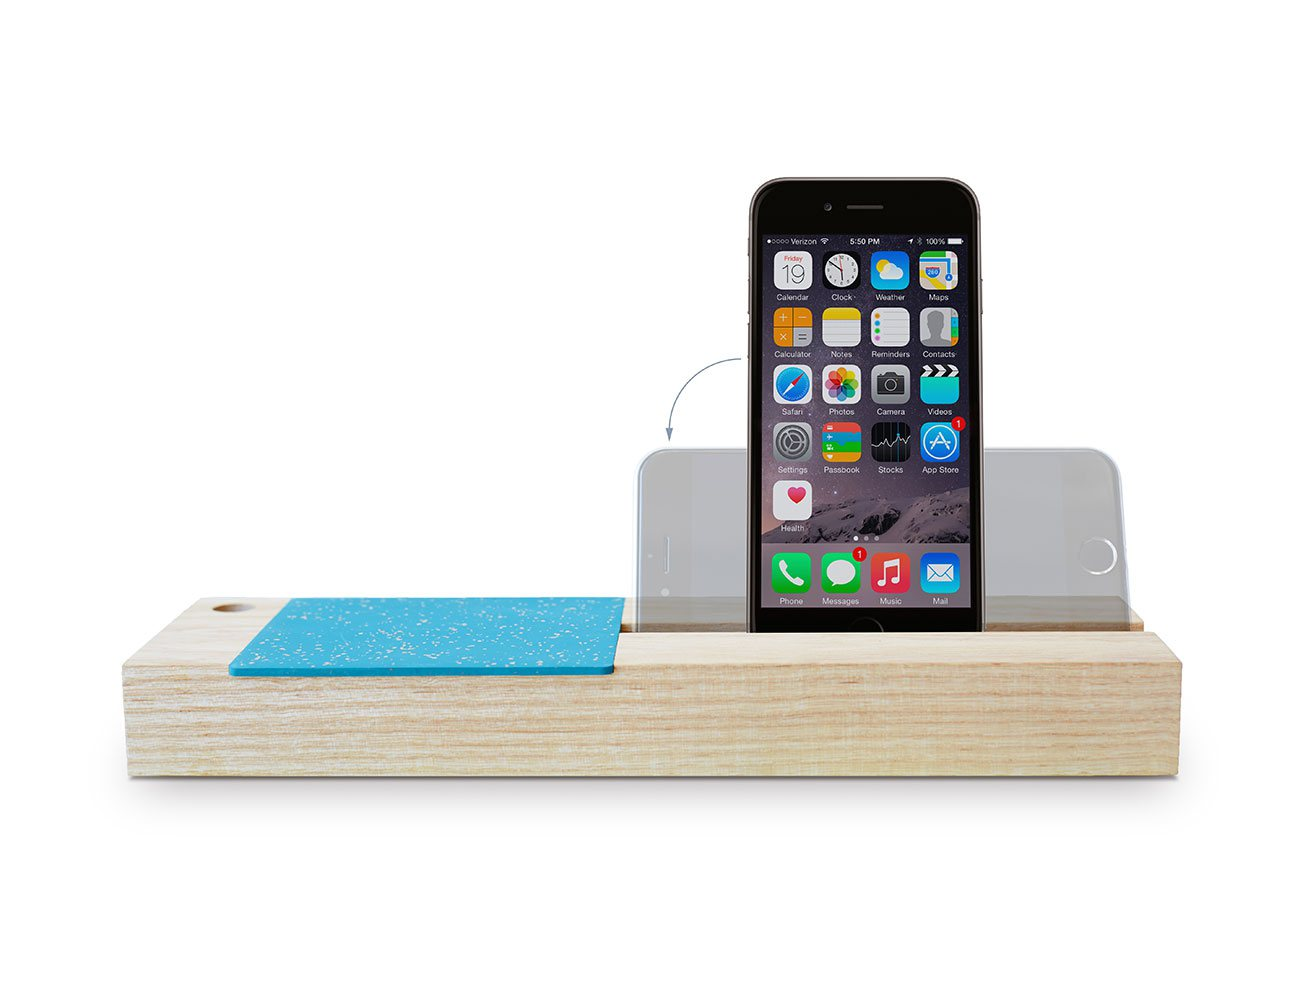 Baxter – iPhone 6 Dock & Storage